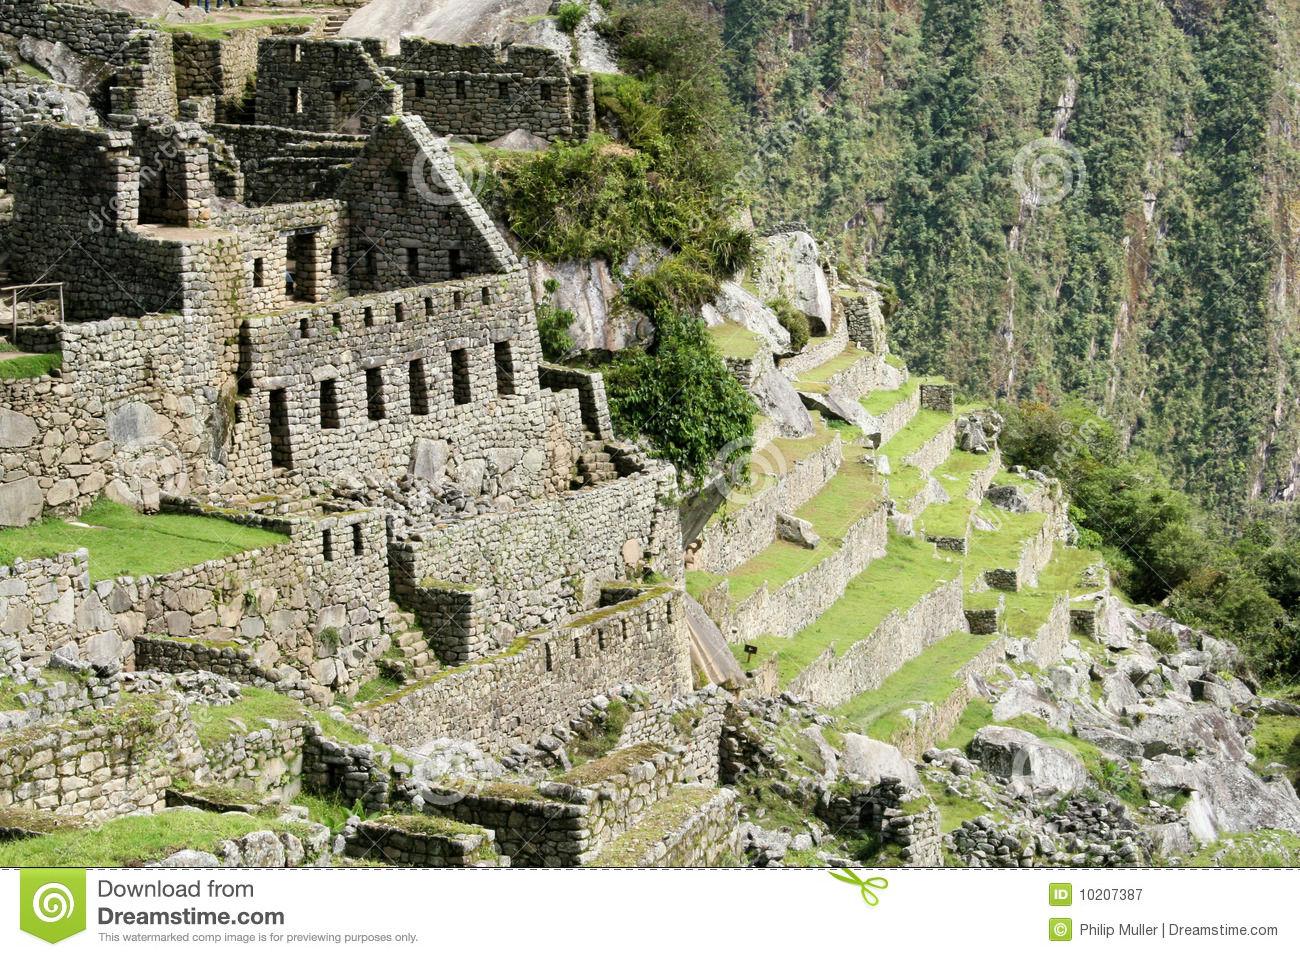 The residential sector of the City of Machu Picchu